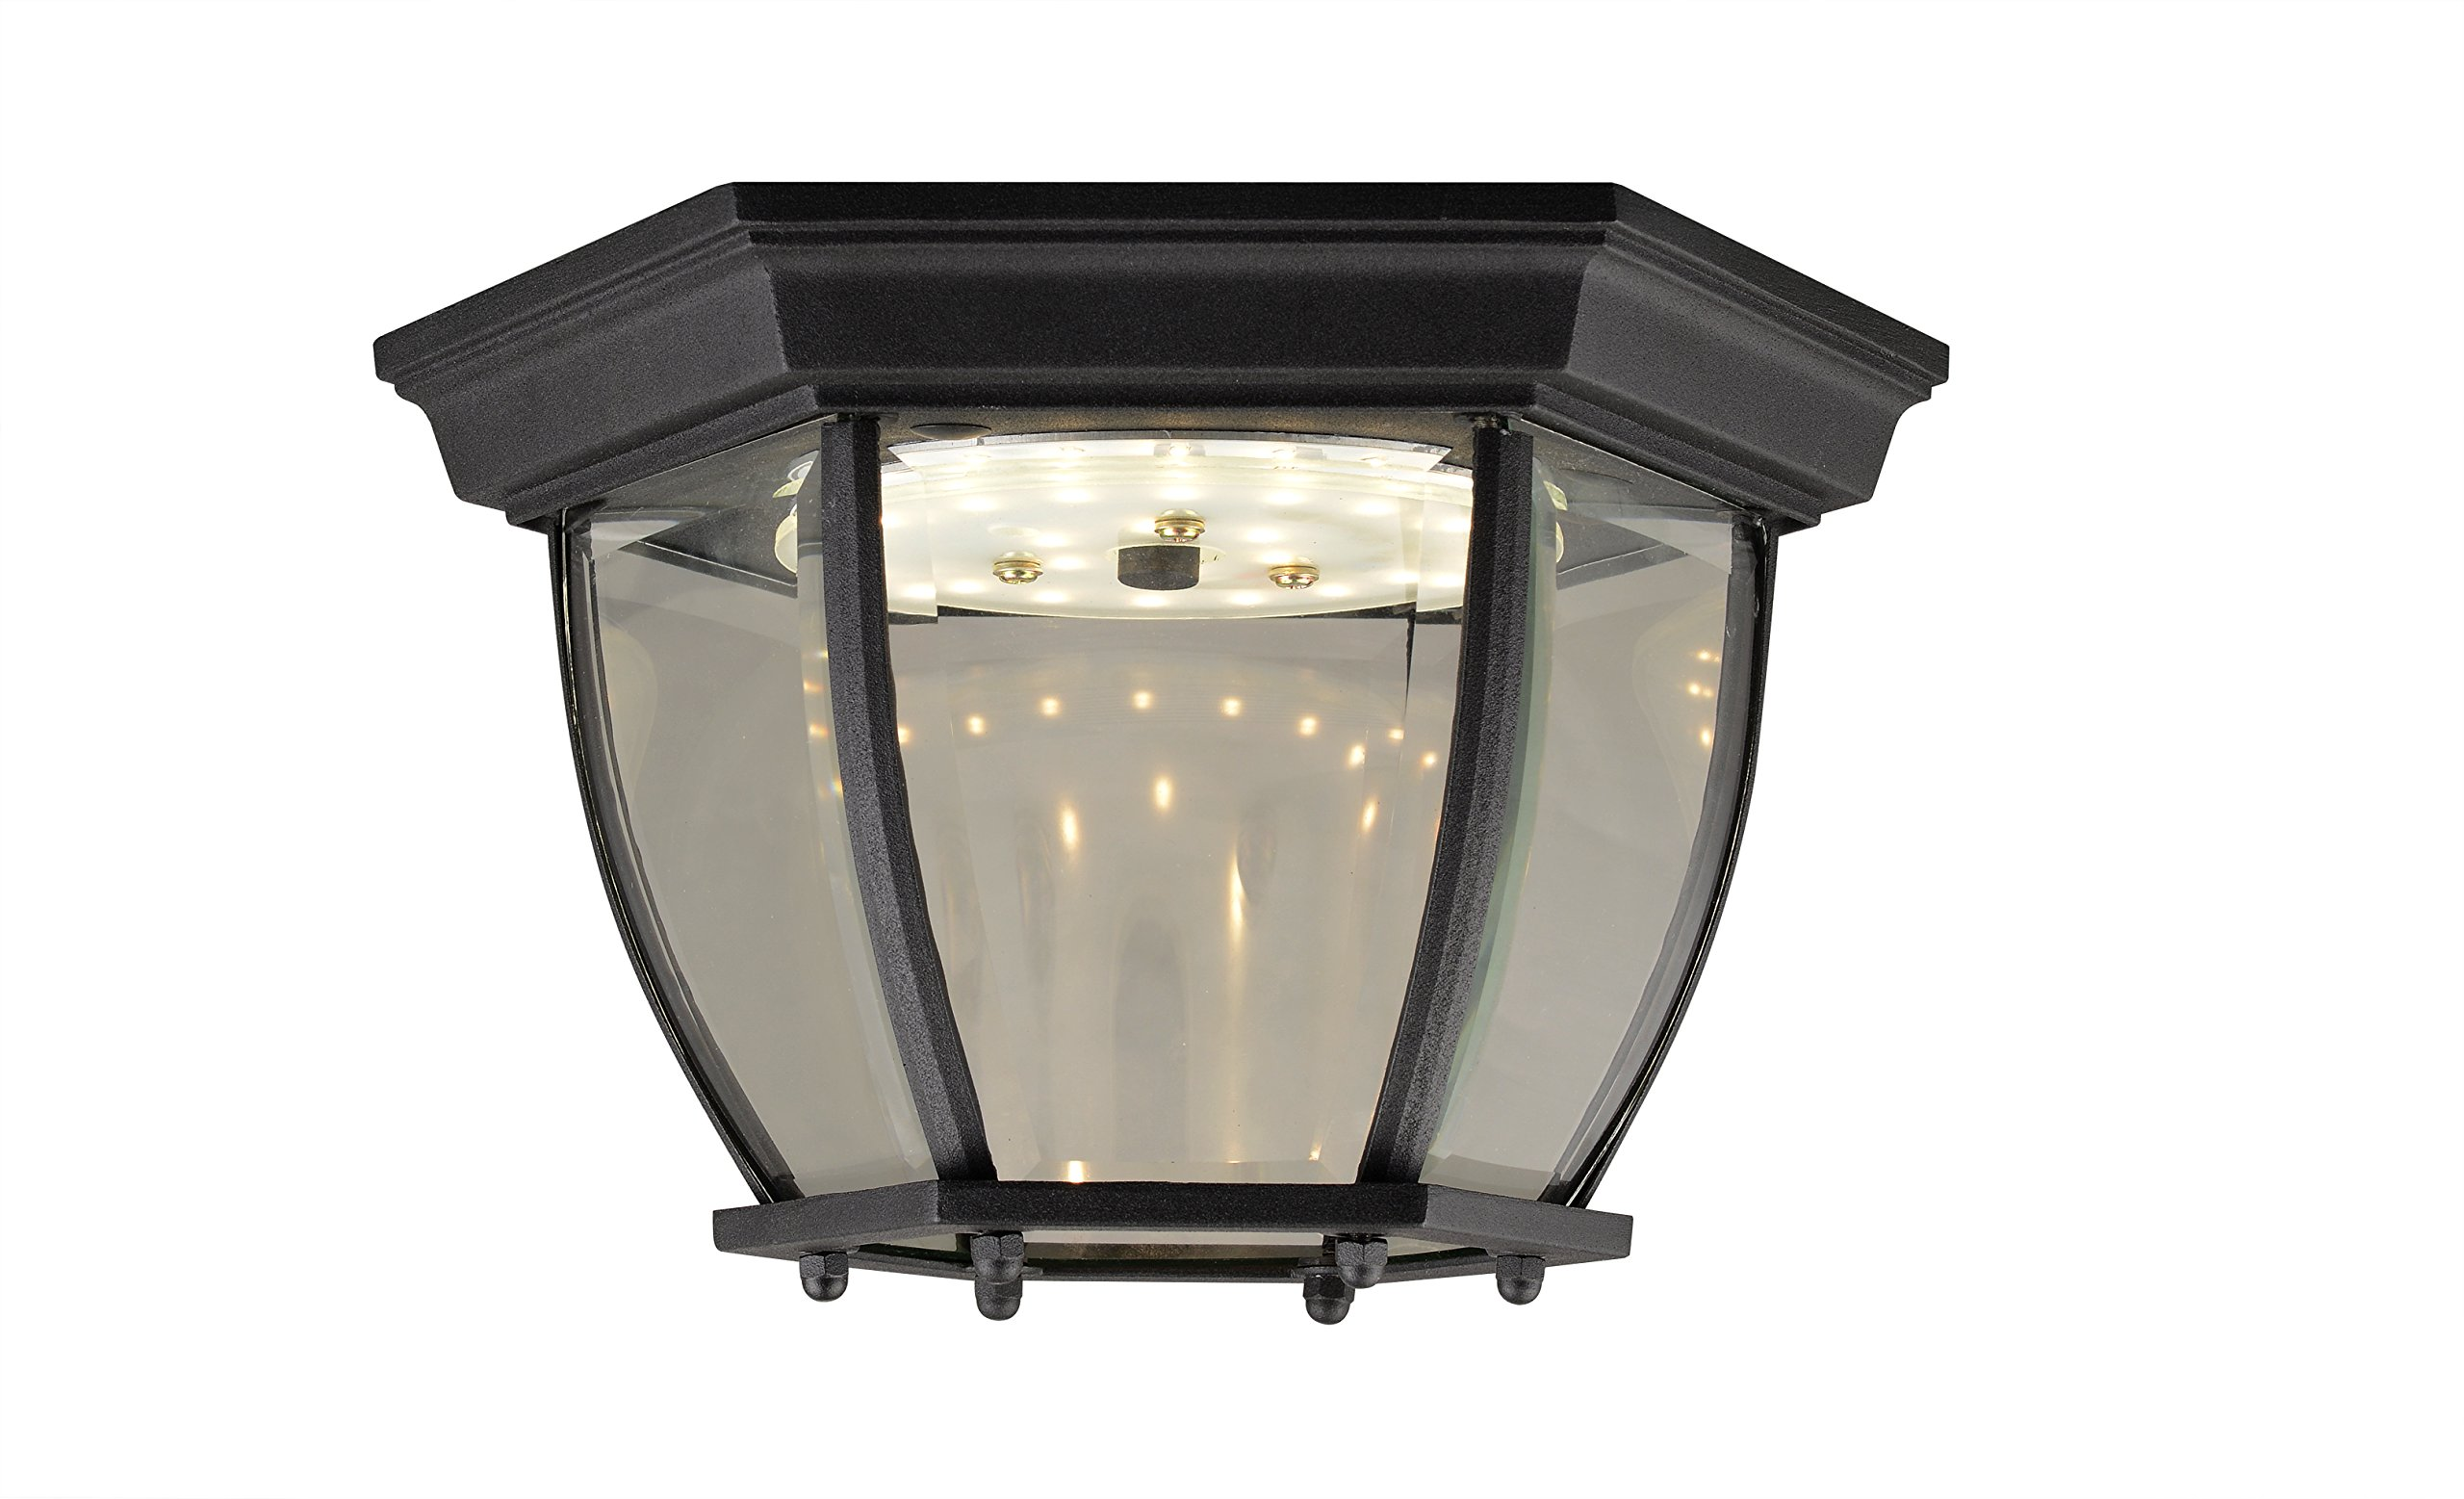 Design House 578518 Canterbury II LED Outdoor Ceiling Light, Black